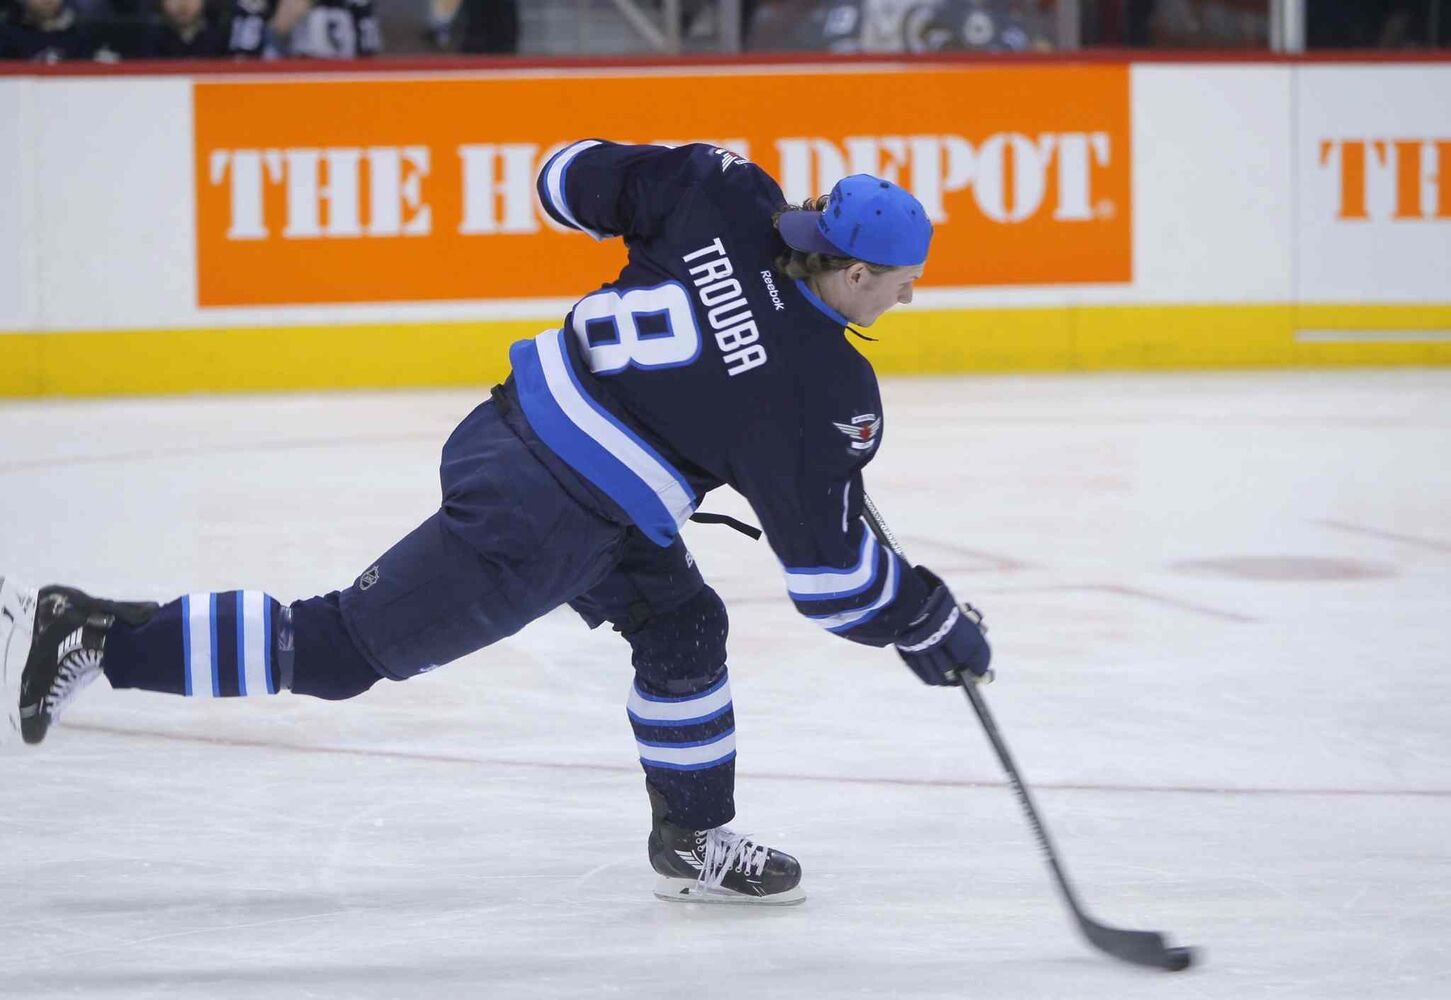 Defenceman Jacob Trouba unloads during the hardest shot portion of the skills competition.